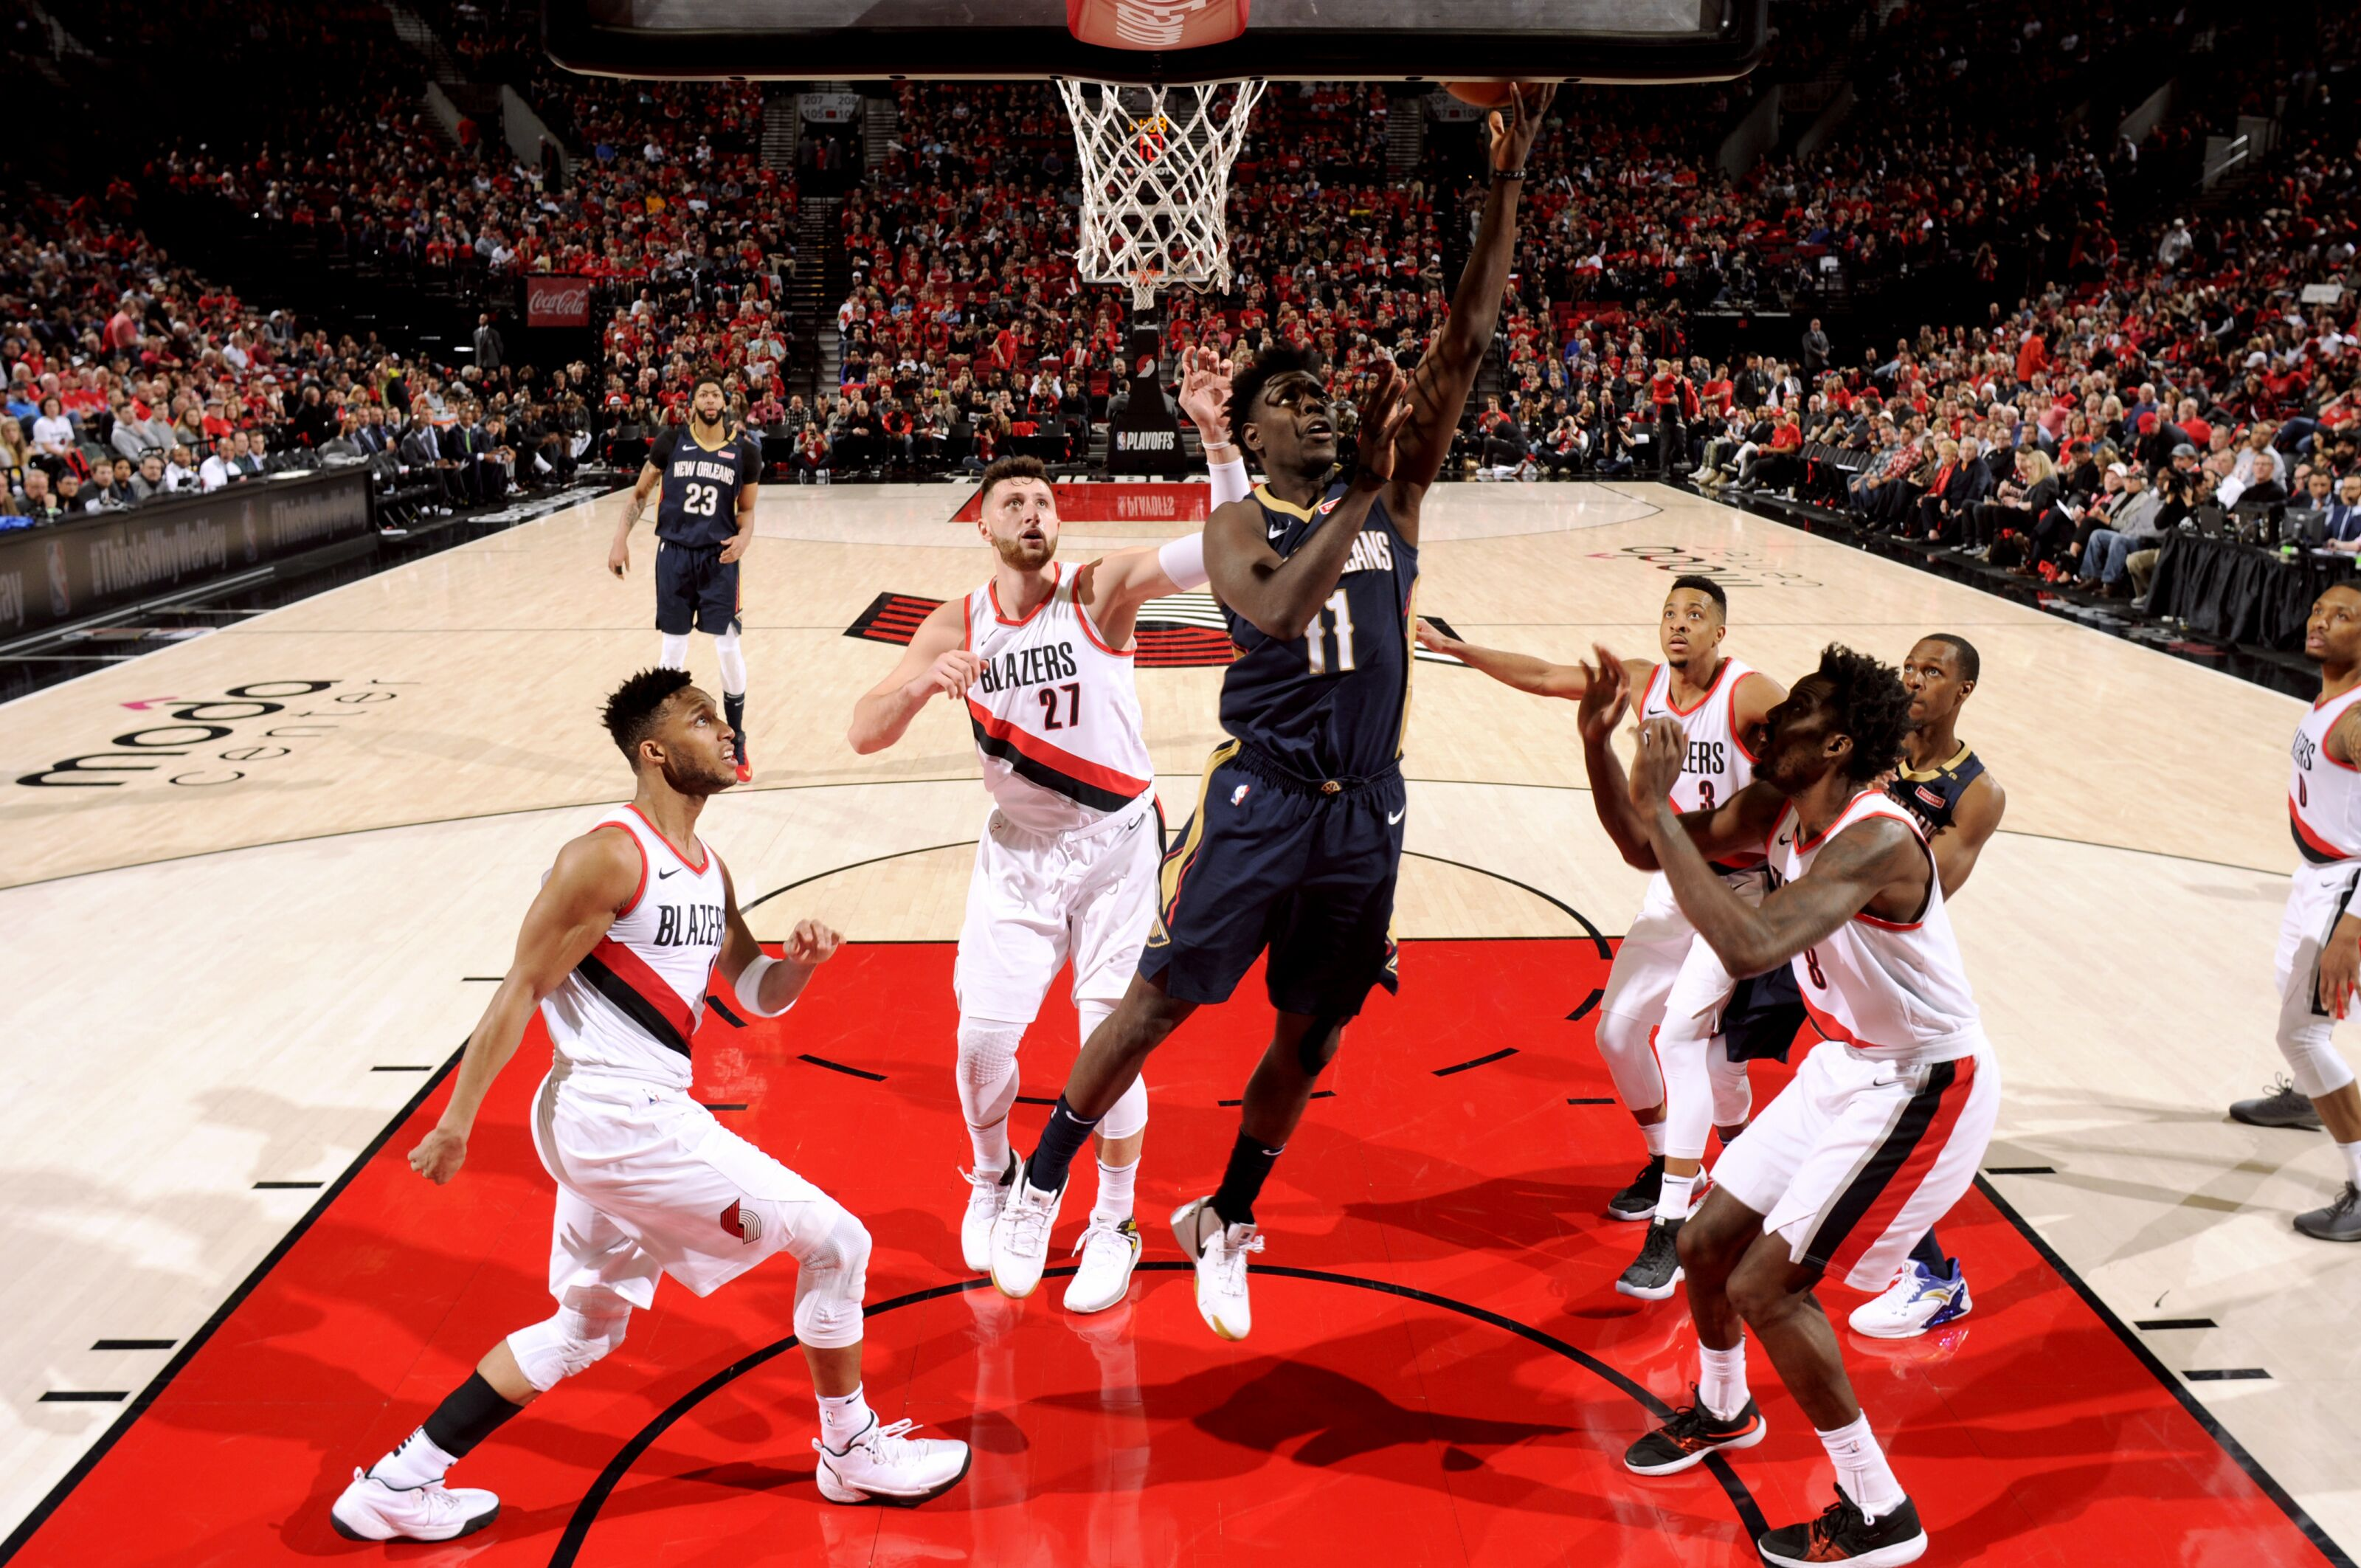 NBA Playoffs 2018 Portland Trail Blazers Vs. New Orleans Pelicans Game 3 Live Stream Watch Online